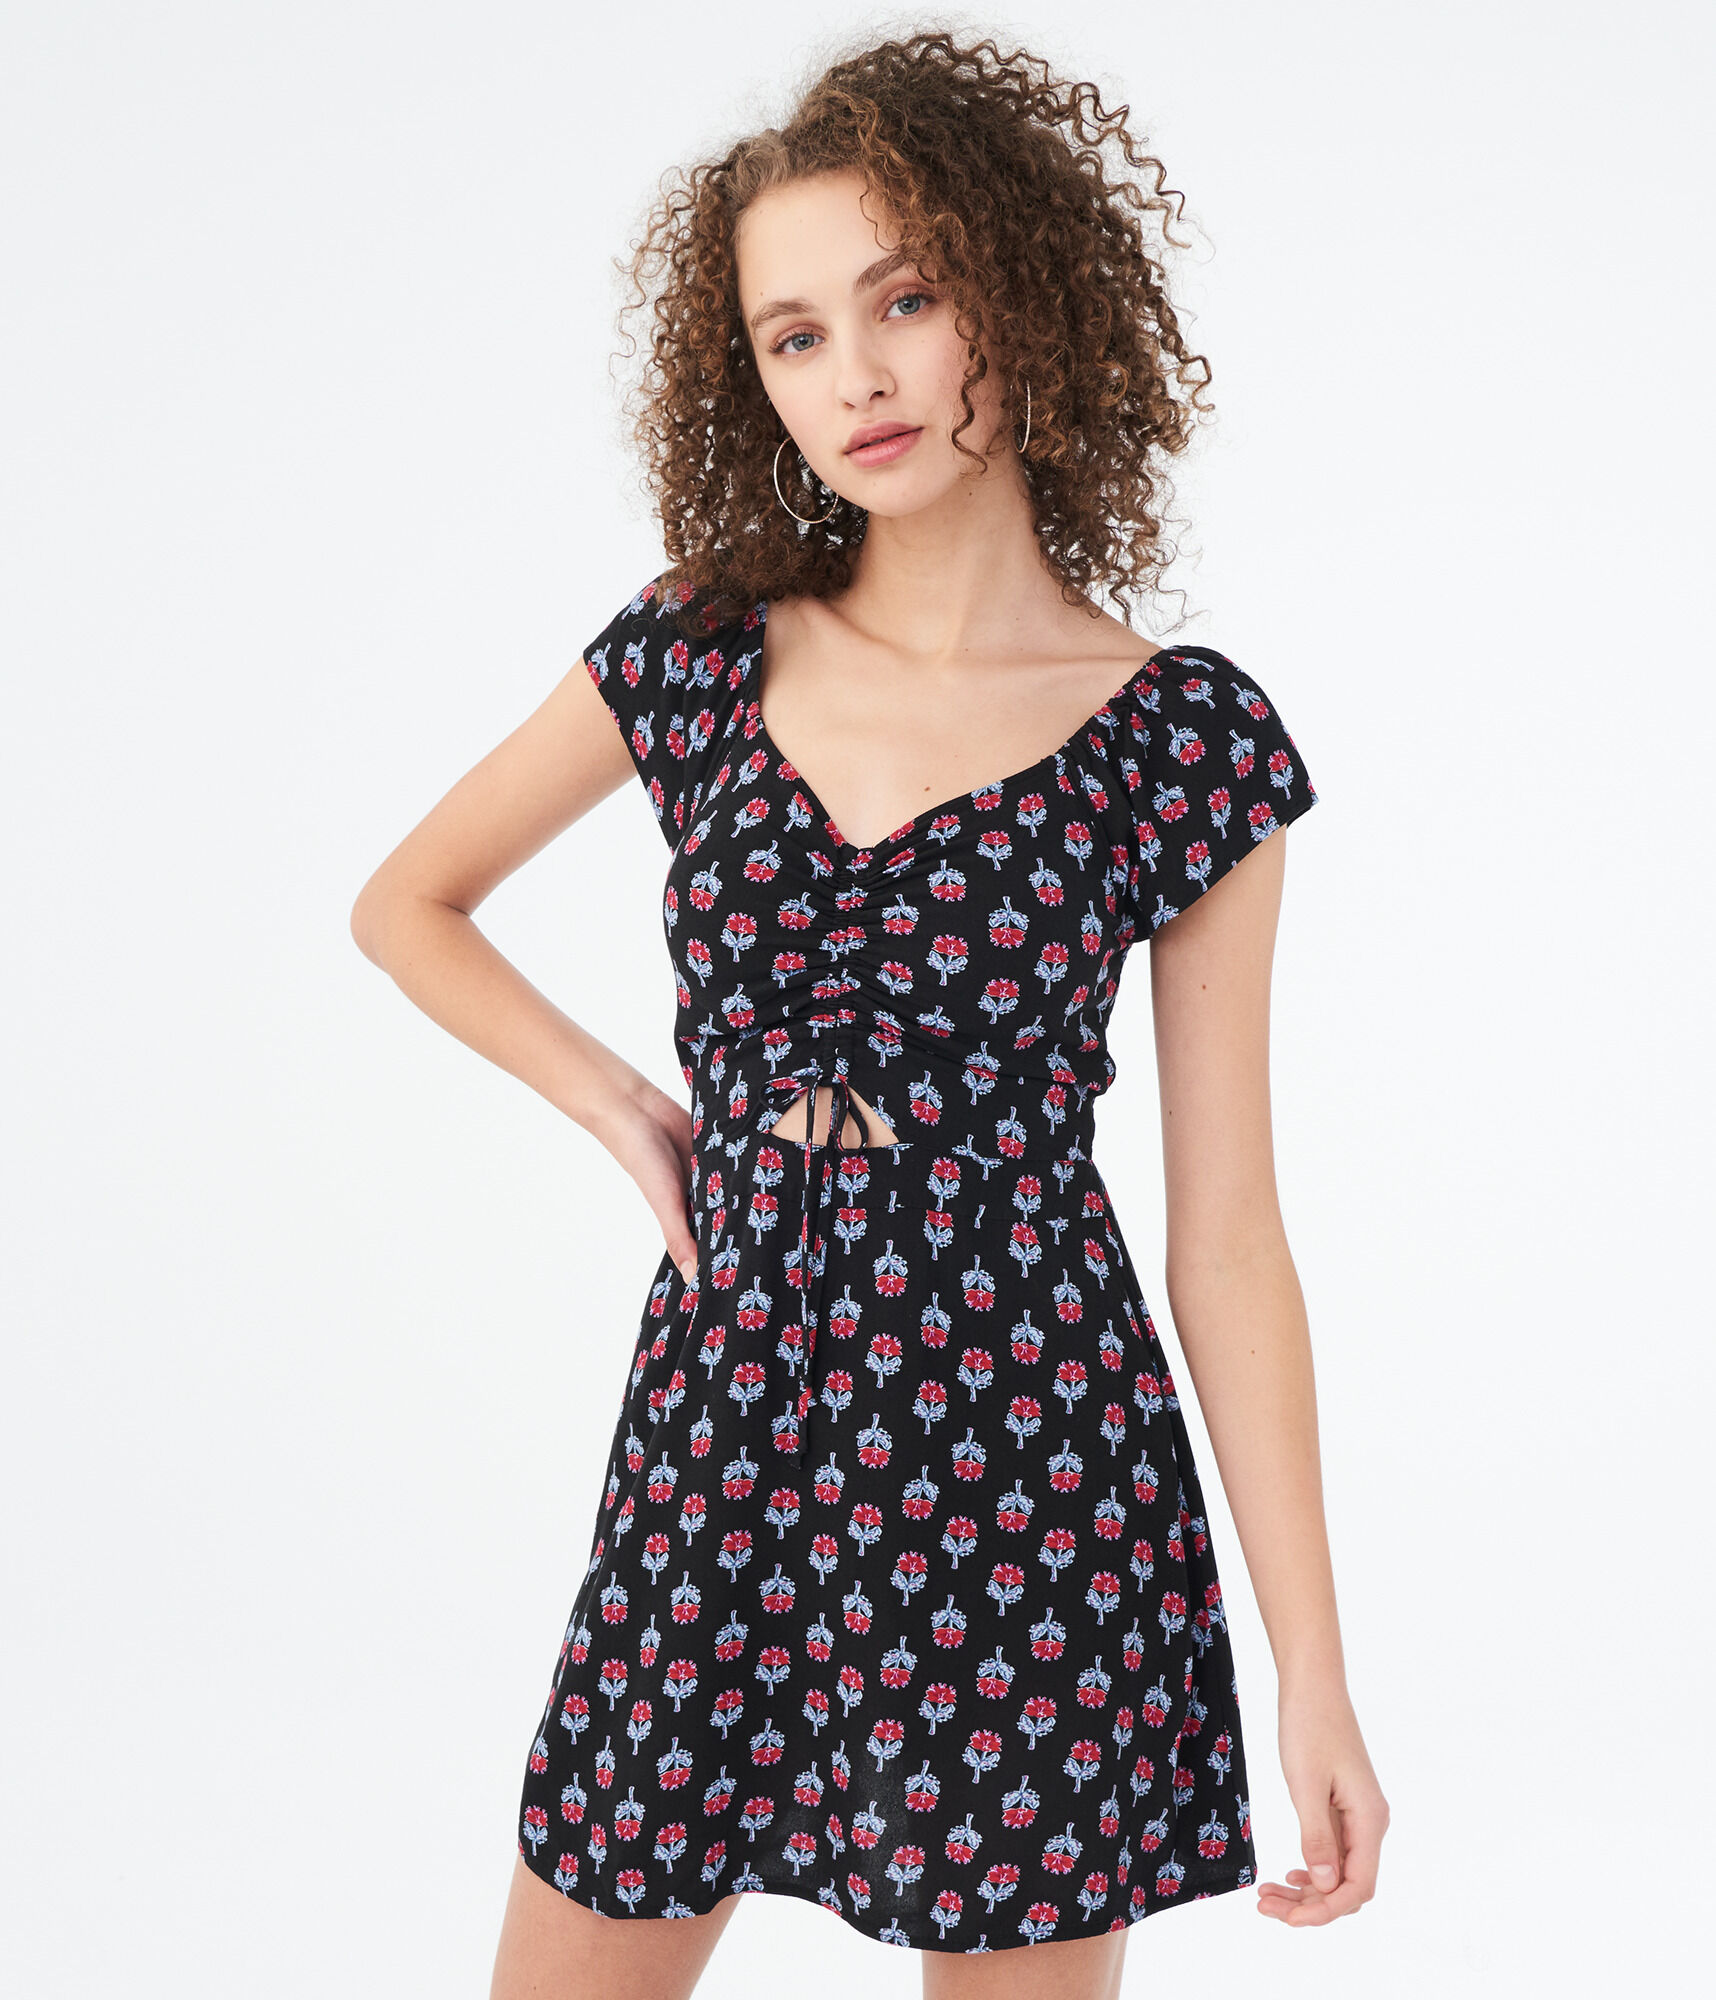 Buy Dresses aeropostale photo pictures trends